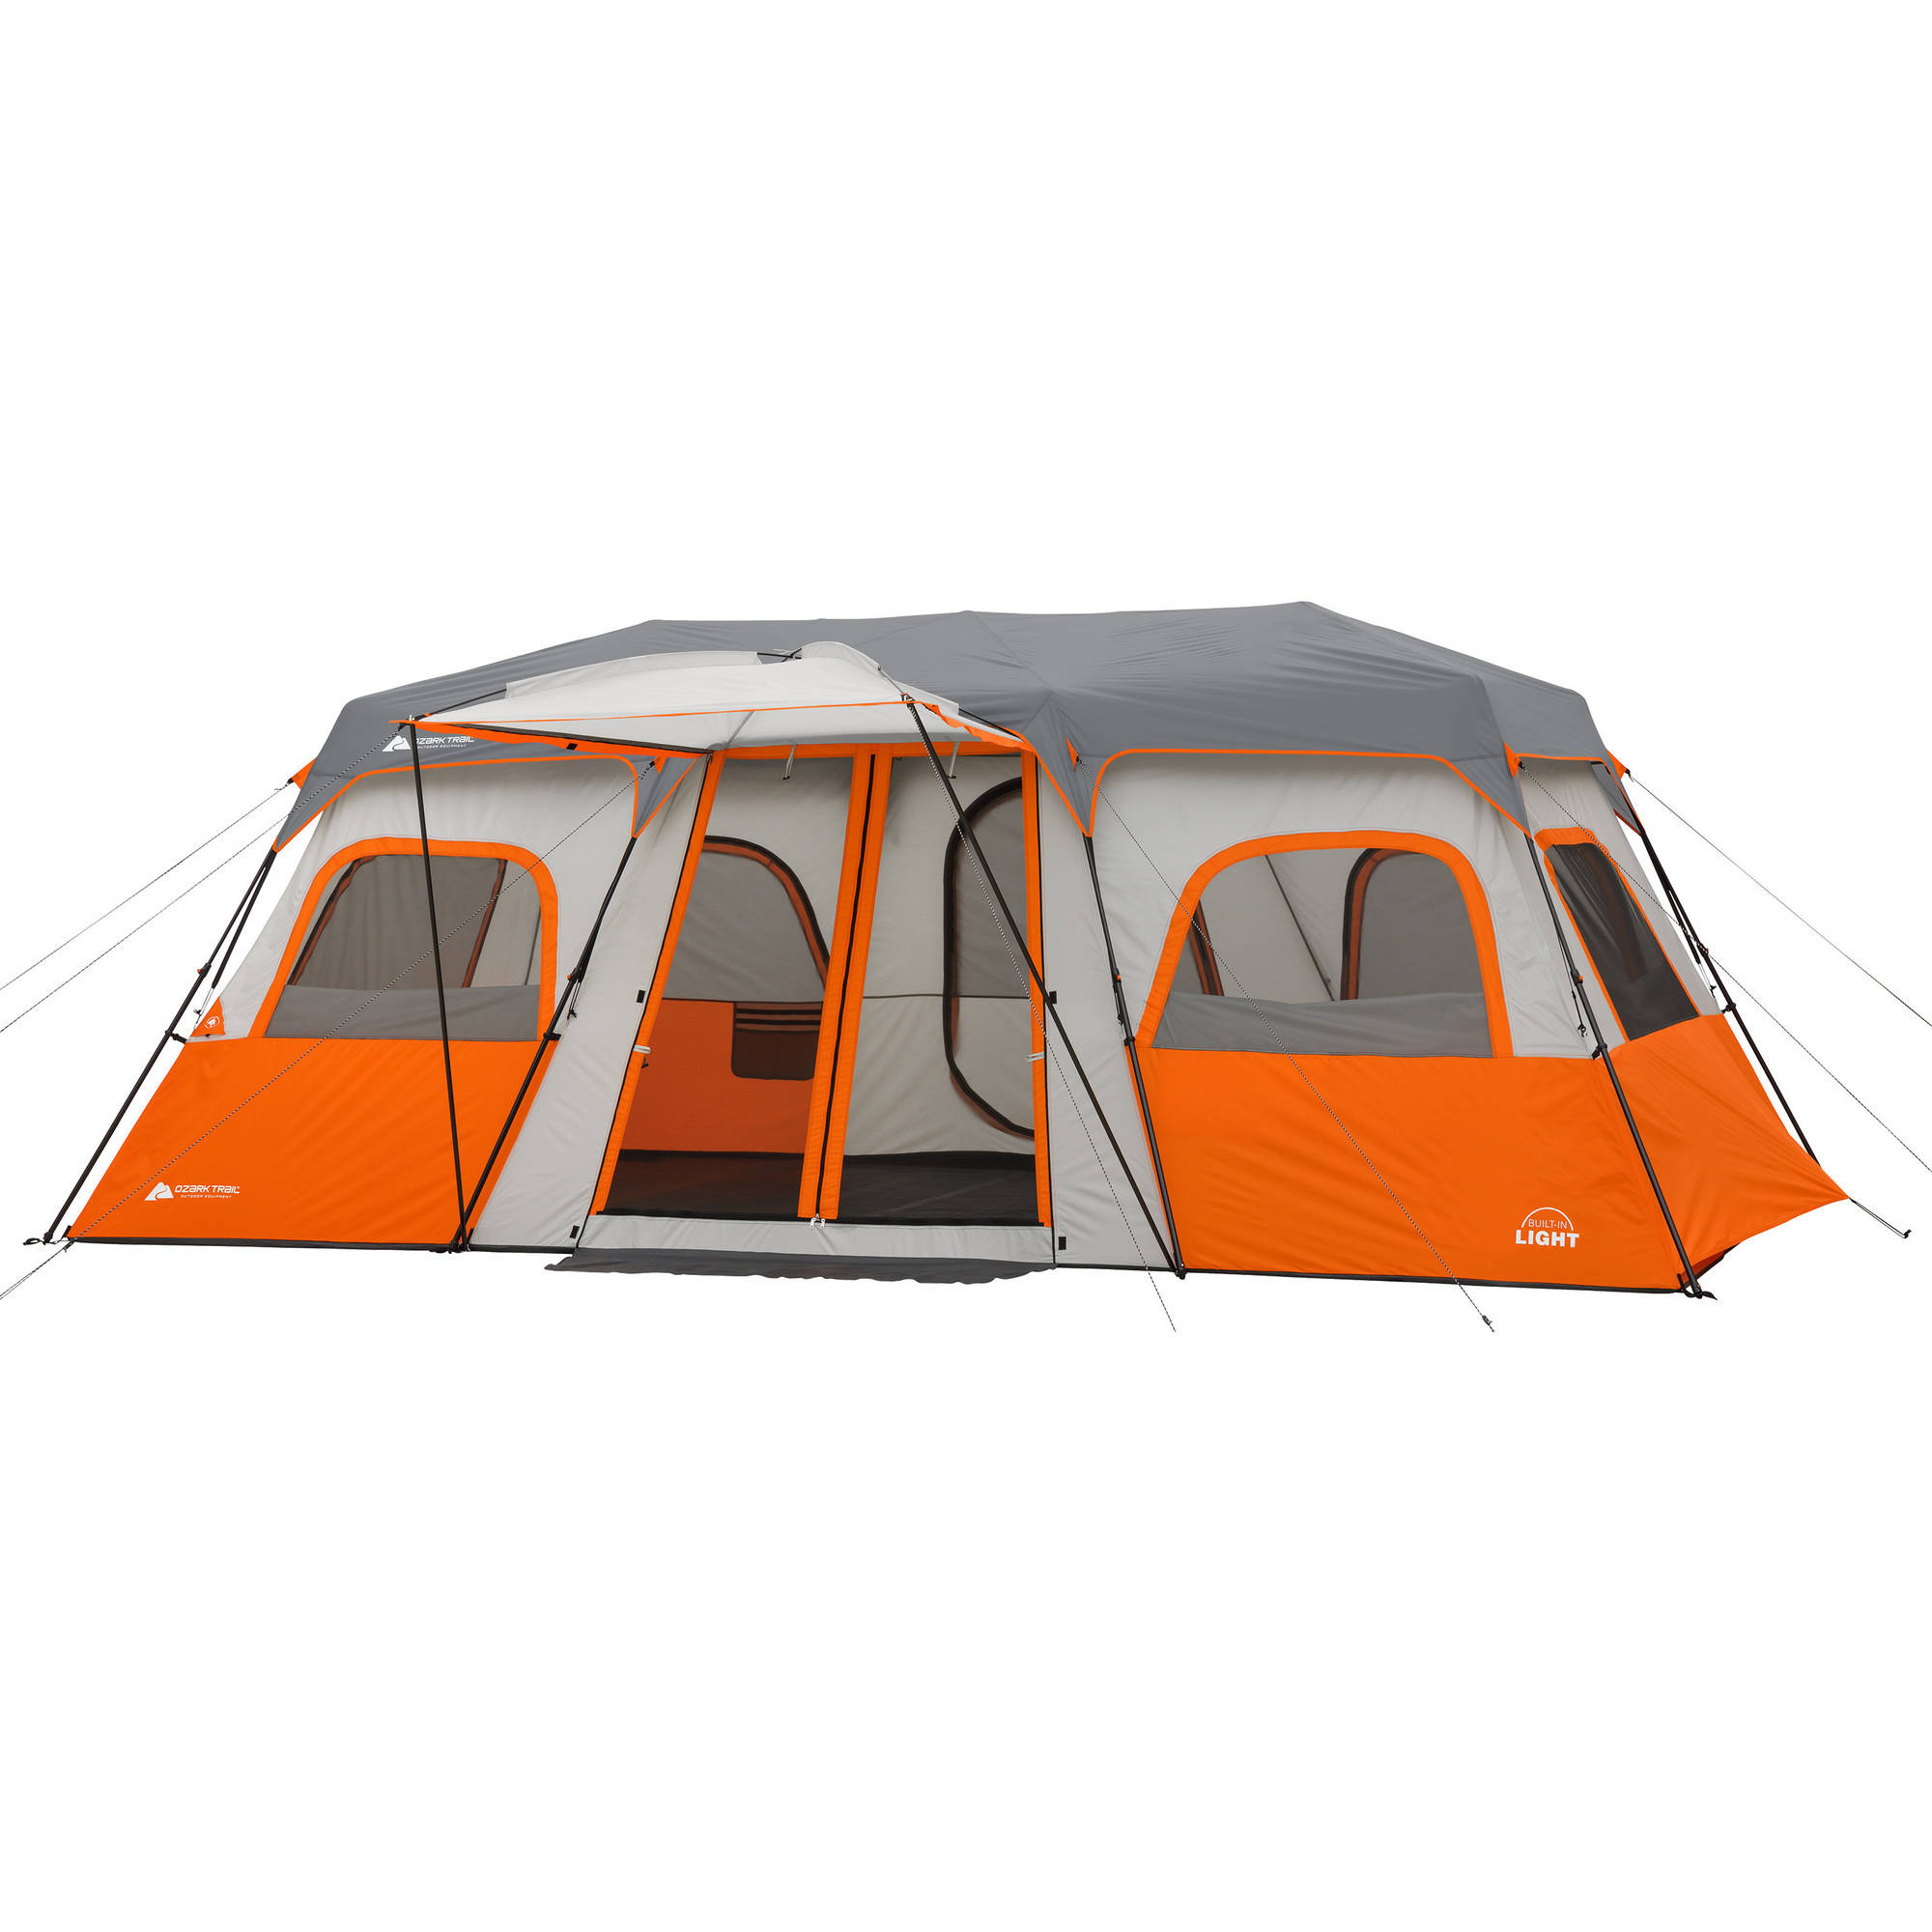 Ozark Trail 18  x 10u0027 Instant Cabin Tent with Integrated Led Light Sleeps  sc 1 st  Walmart & Ozark Trail 18